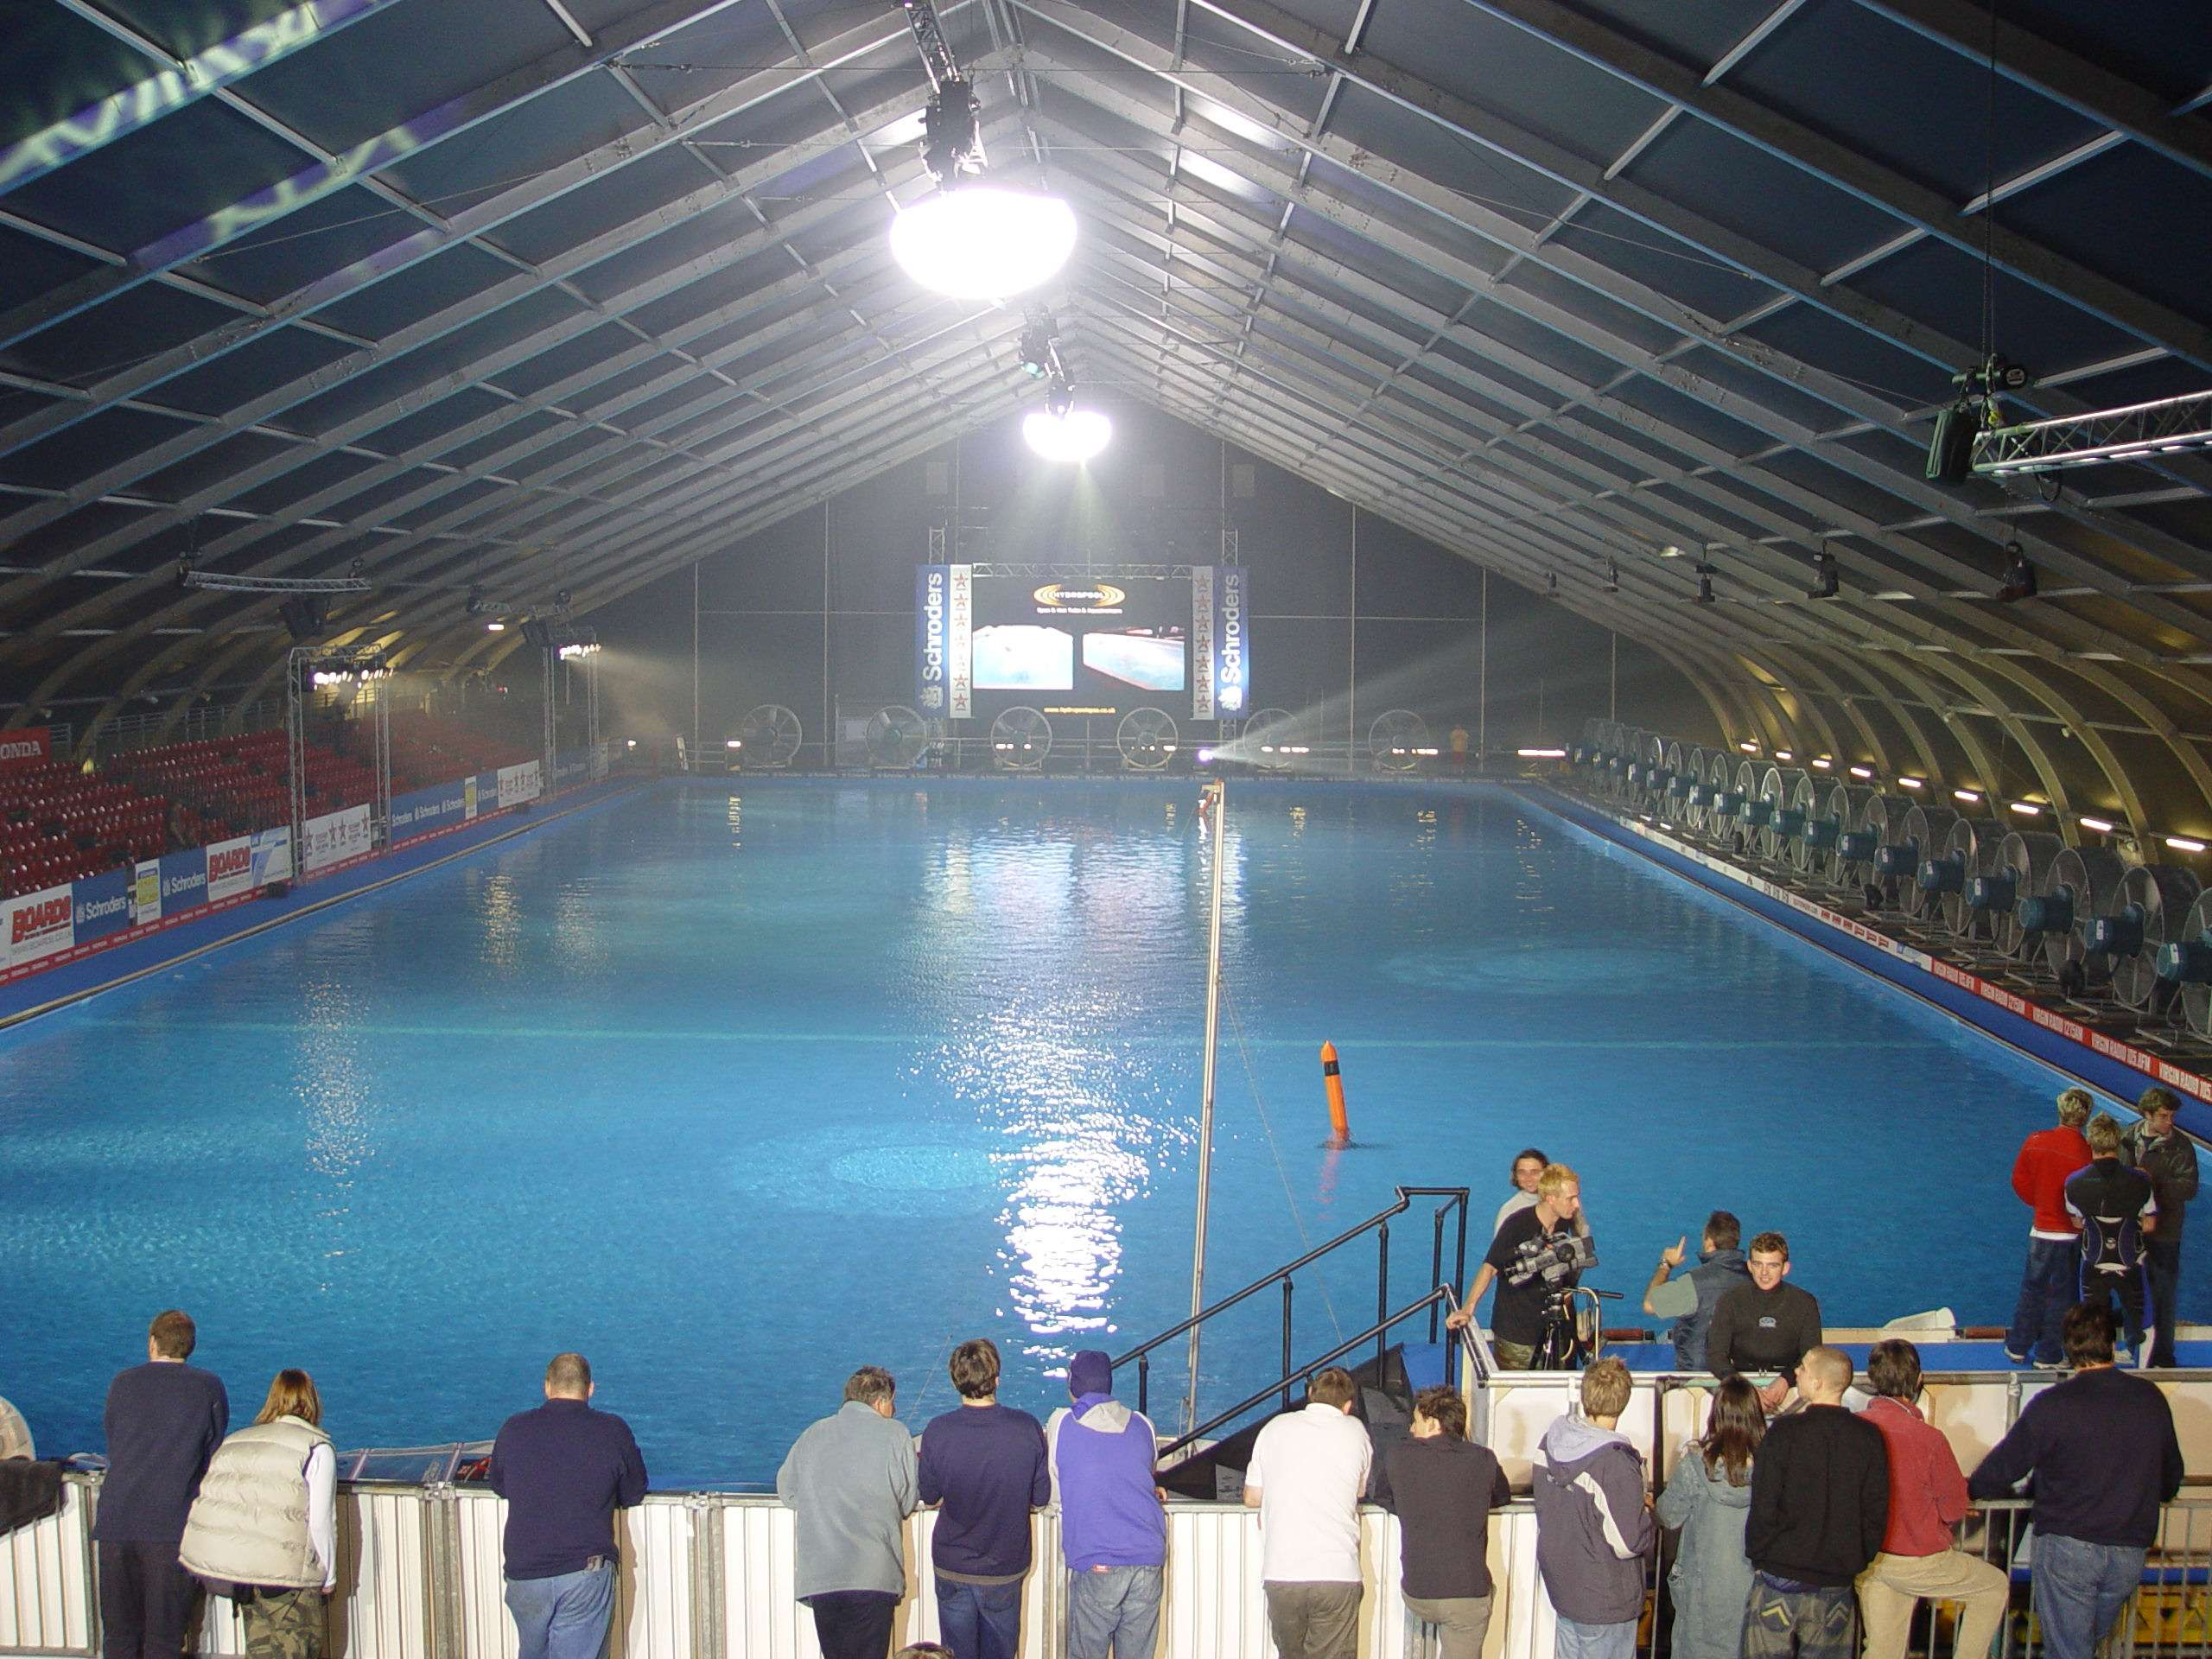 indoor swimming pool facility protected by fabric building